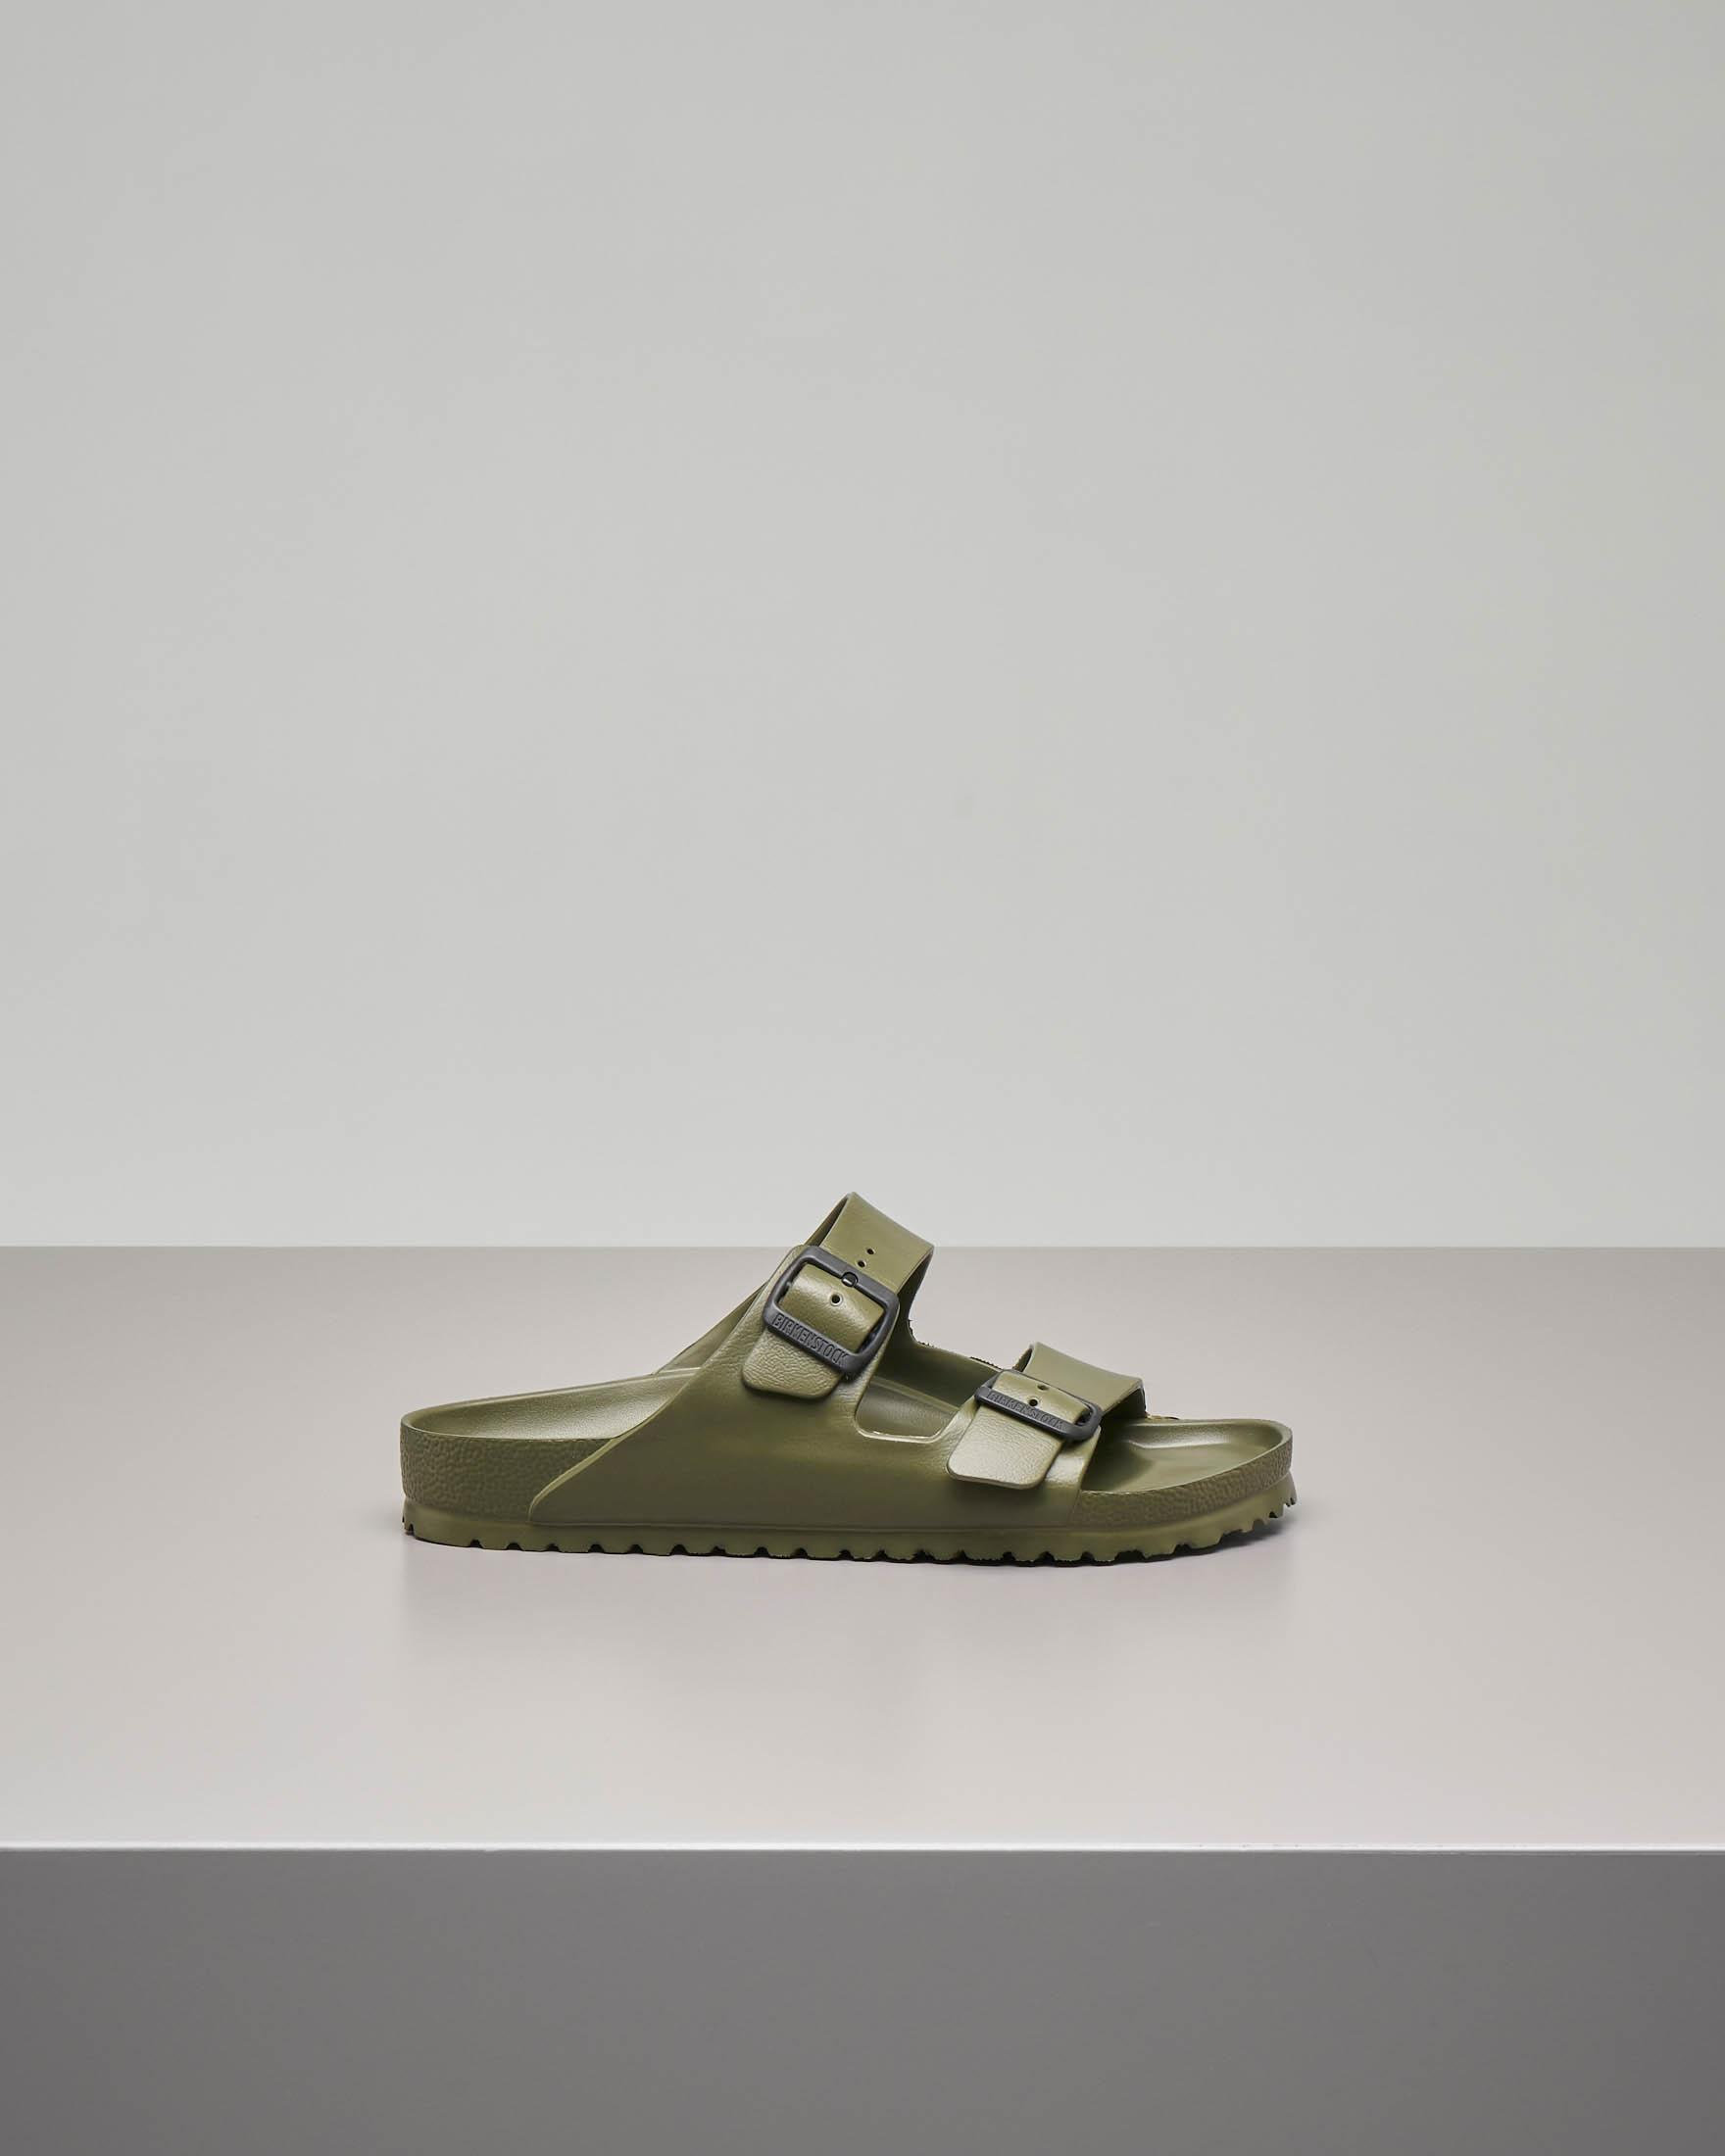 Sandalo Arizona verde militare in EVA